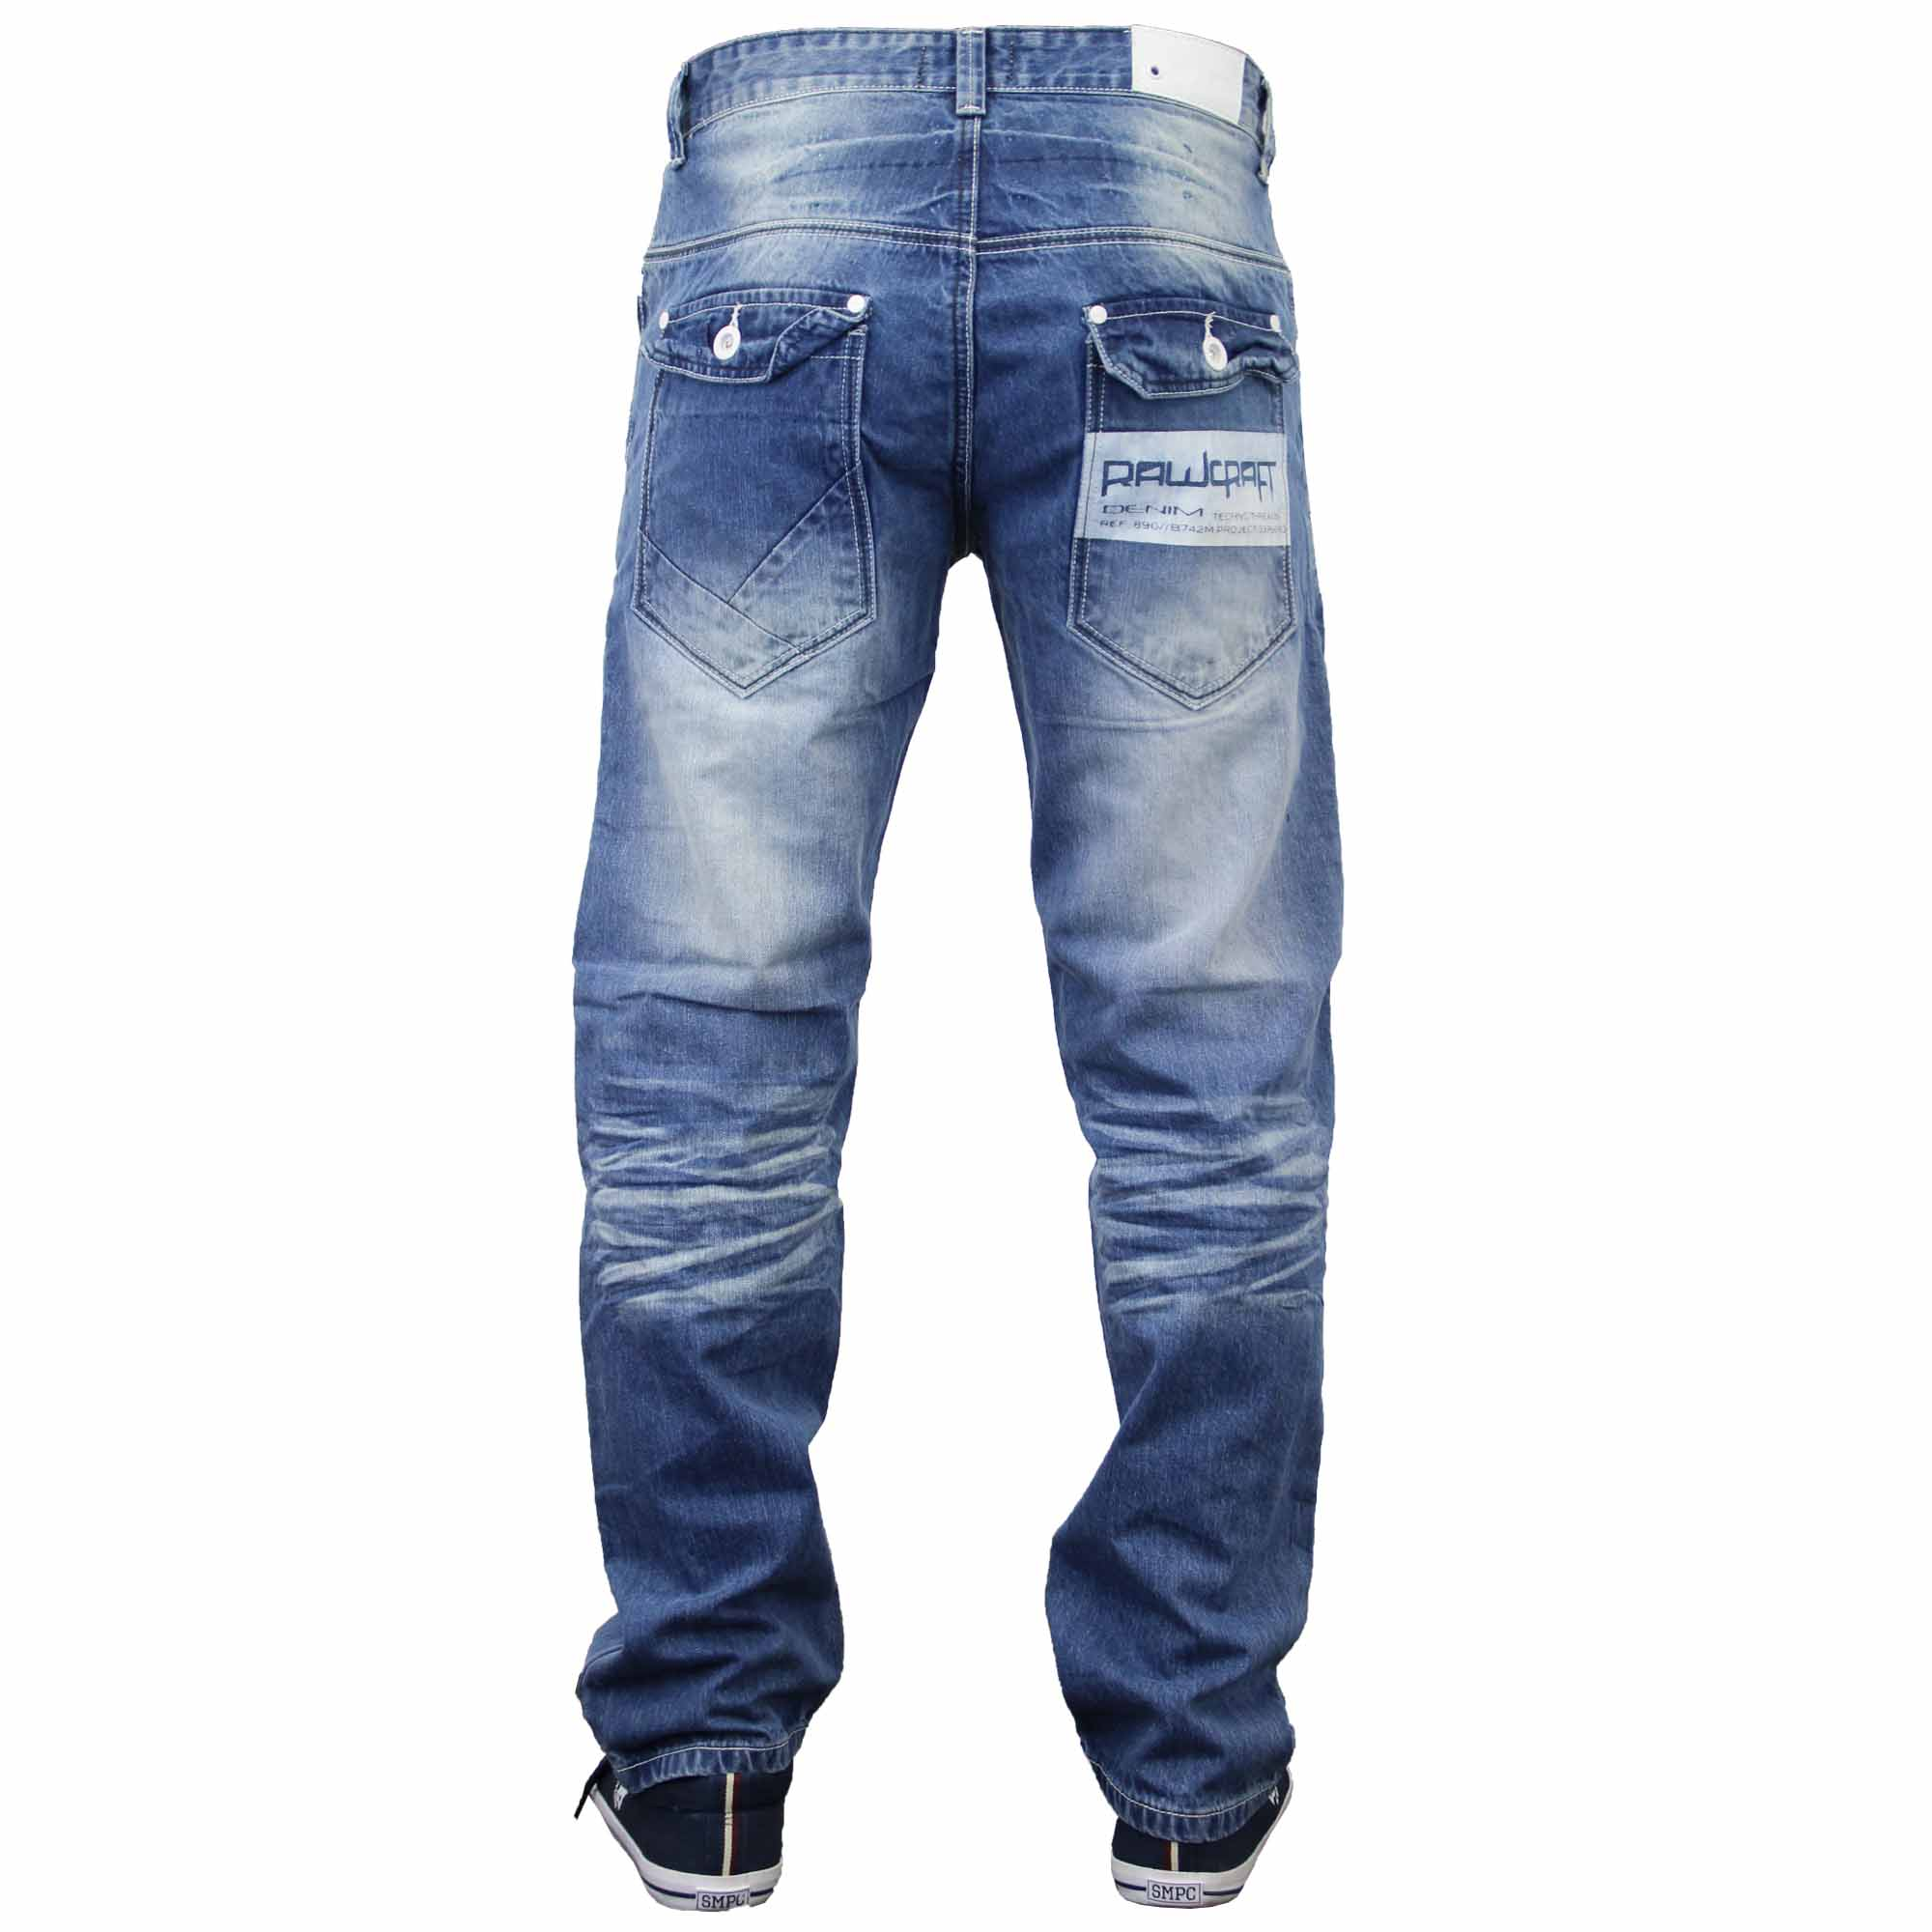 How men's classic fit slim jeans should fit? Men's classic fit slim jeans should fit comfortably, so you can wear them with ease. While these jeans are slimming, they're not skinny jeans. They loosely fit, and are straight legged. They should hit the bottom of your ankles, and fit comfortably around the waist.